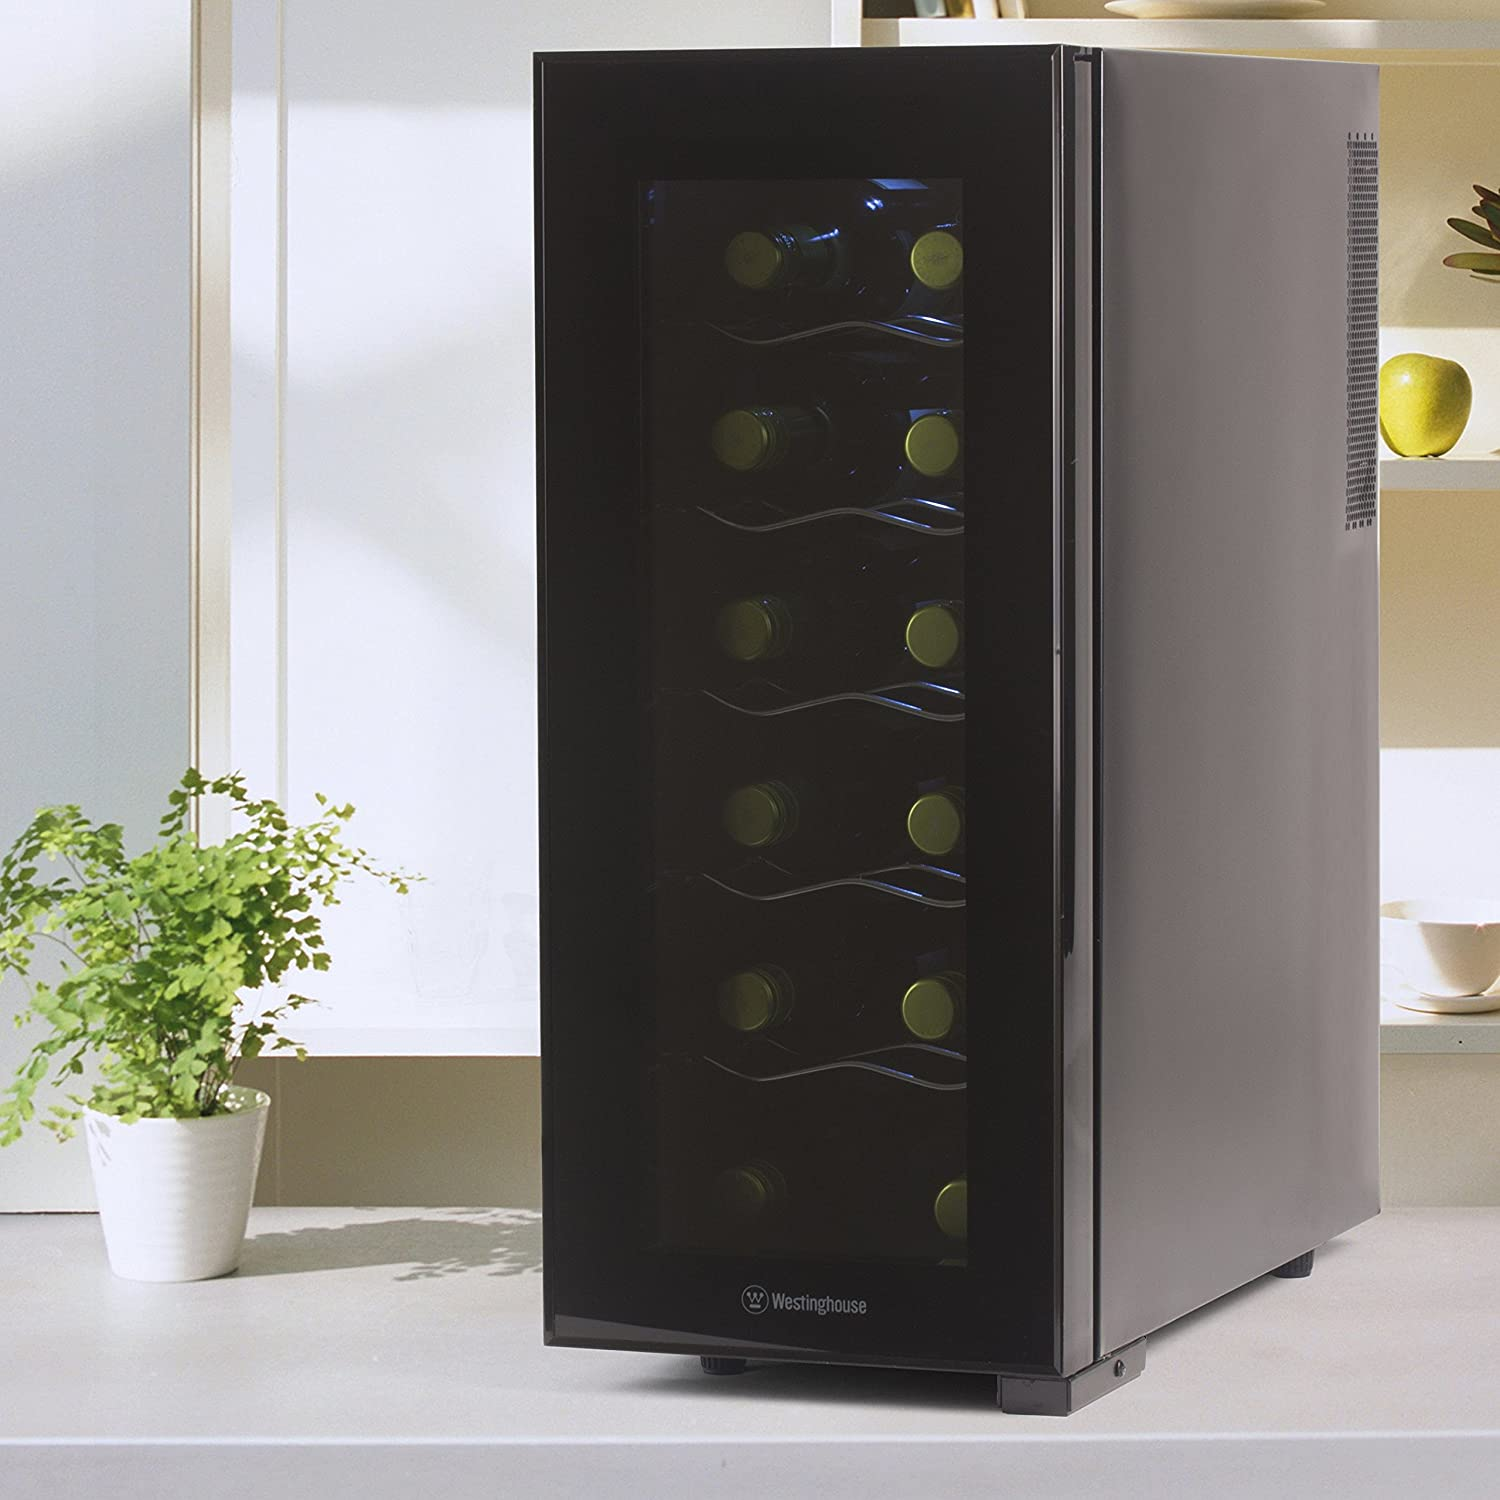 12 Bottle Wine Fridge Part - 35: Amazon.com: Westinghouse WWT120MB Thermal Electric 12 Bottle Wine Cellar,  Black: Kitchen U0026 Dining